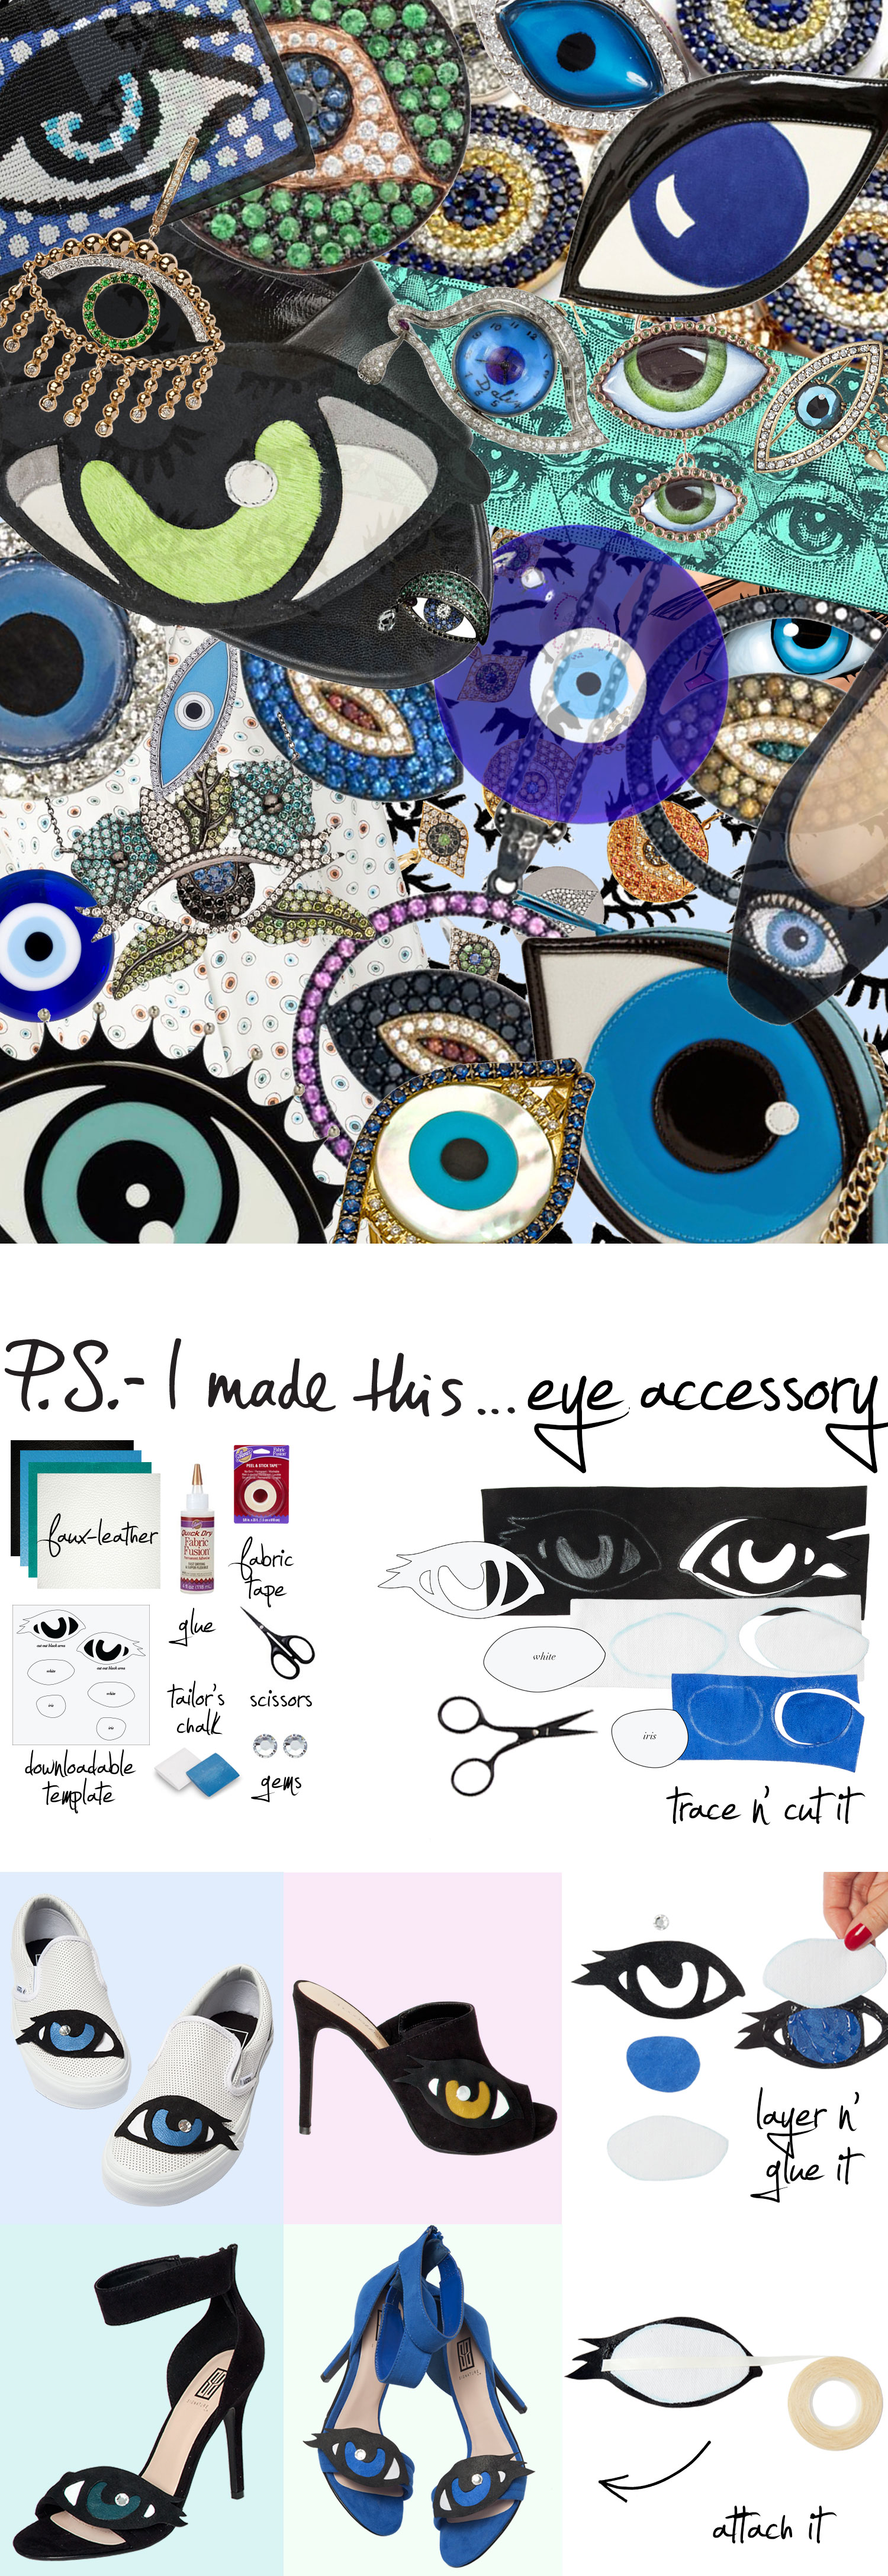 09.04.14_Eye-Accessory-MERGED